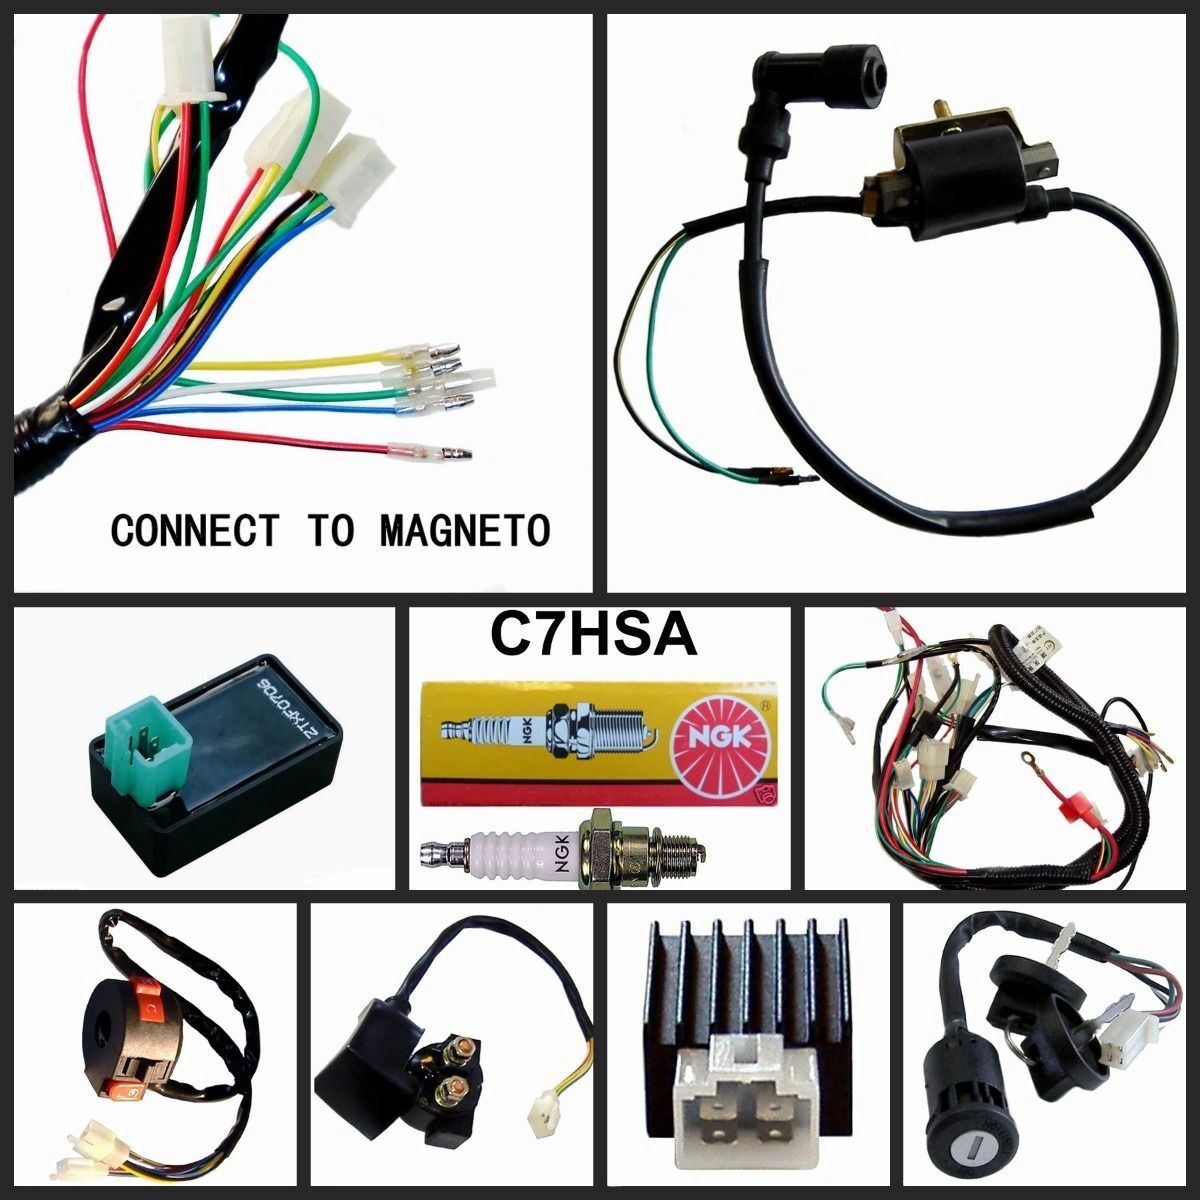 110cc Atv Cdi Wiring Diagram Full Electrics Harness Reinvent Your Taotao Coil 125cc Go Kart Quad Rh Ebay Com Tao Problems Chinese Mount